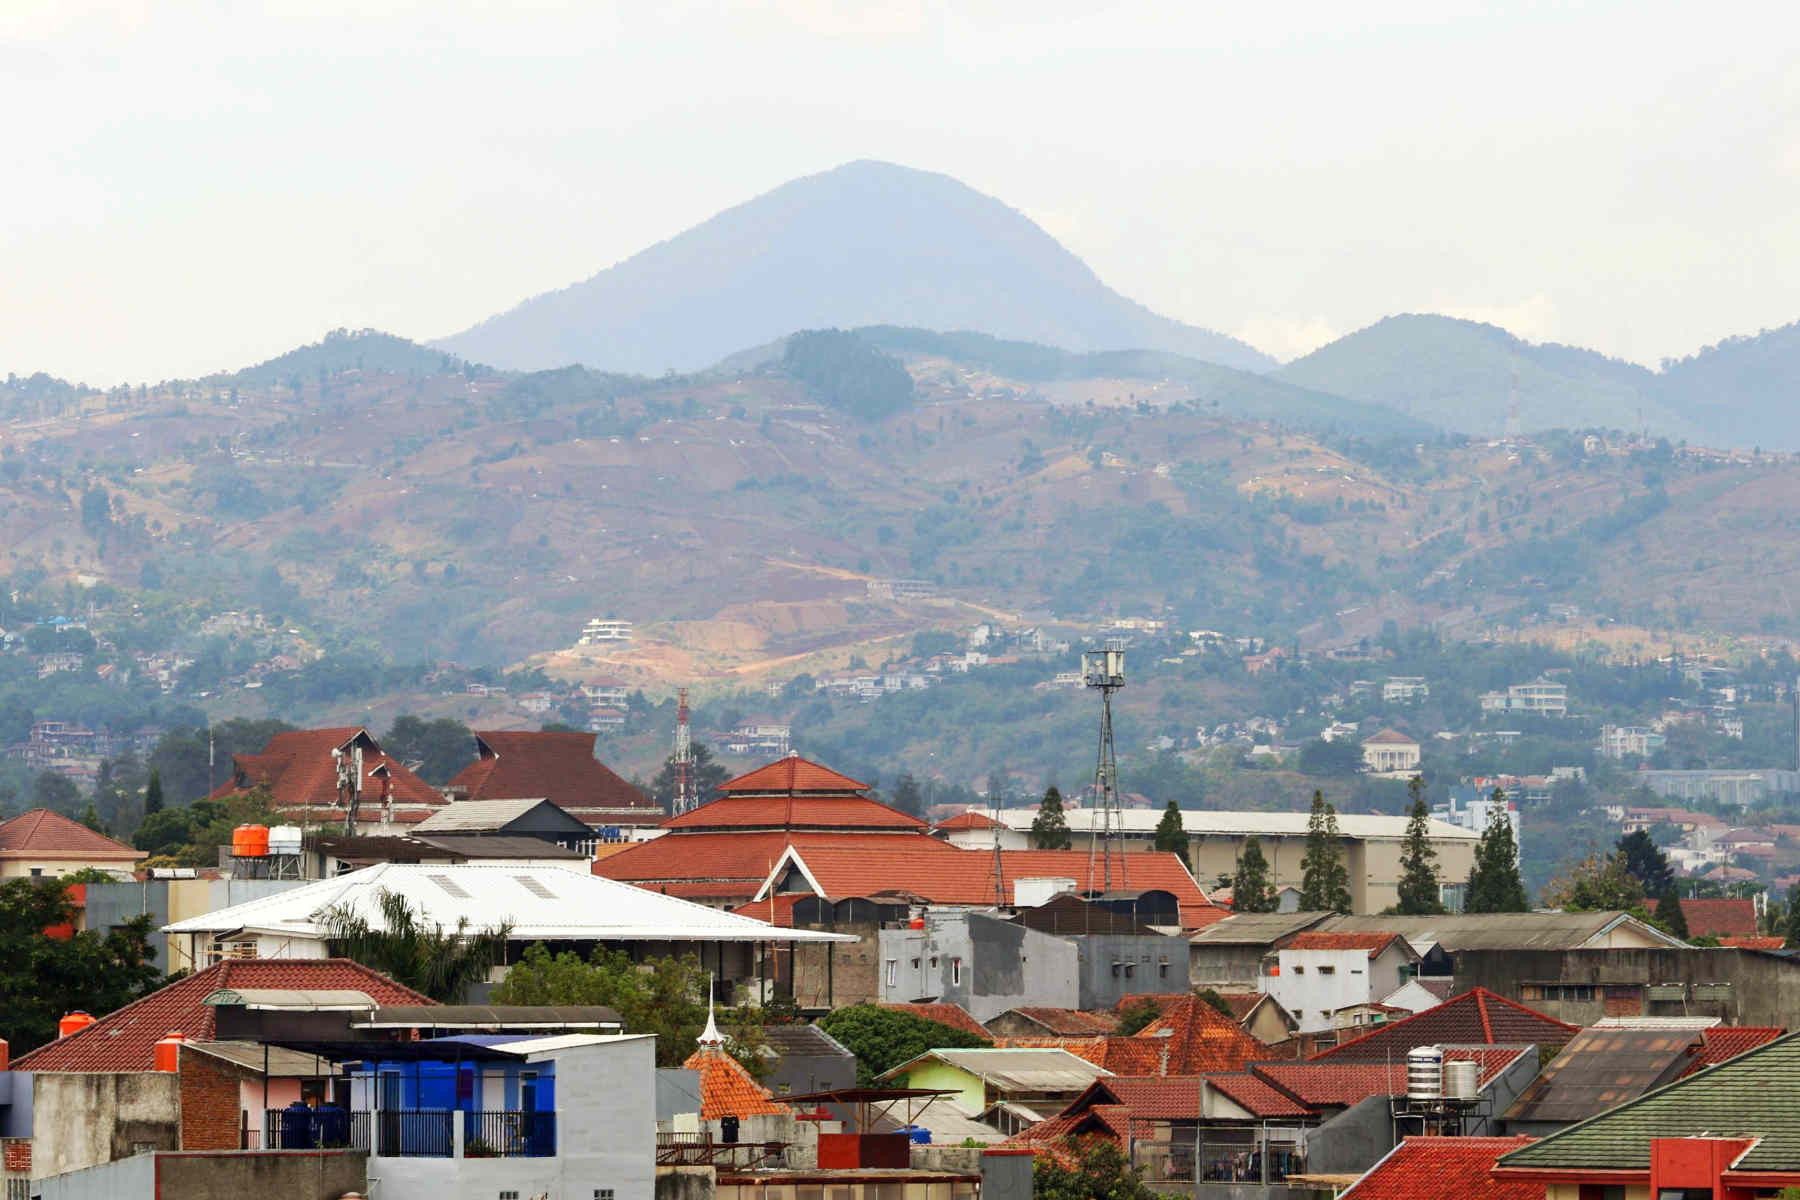 bandung is one of beautiful city in indonesia